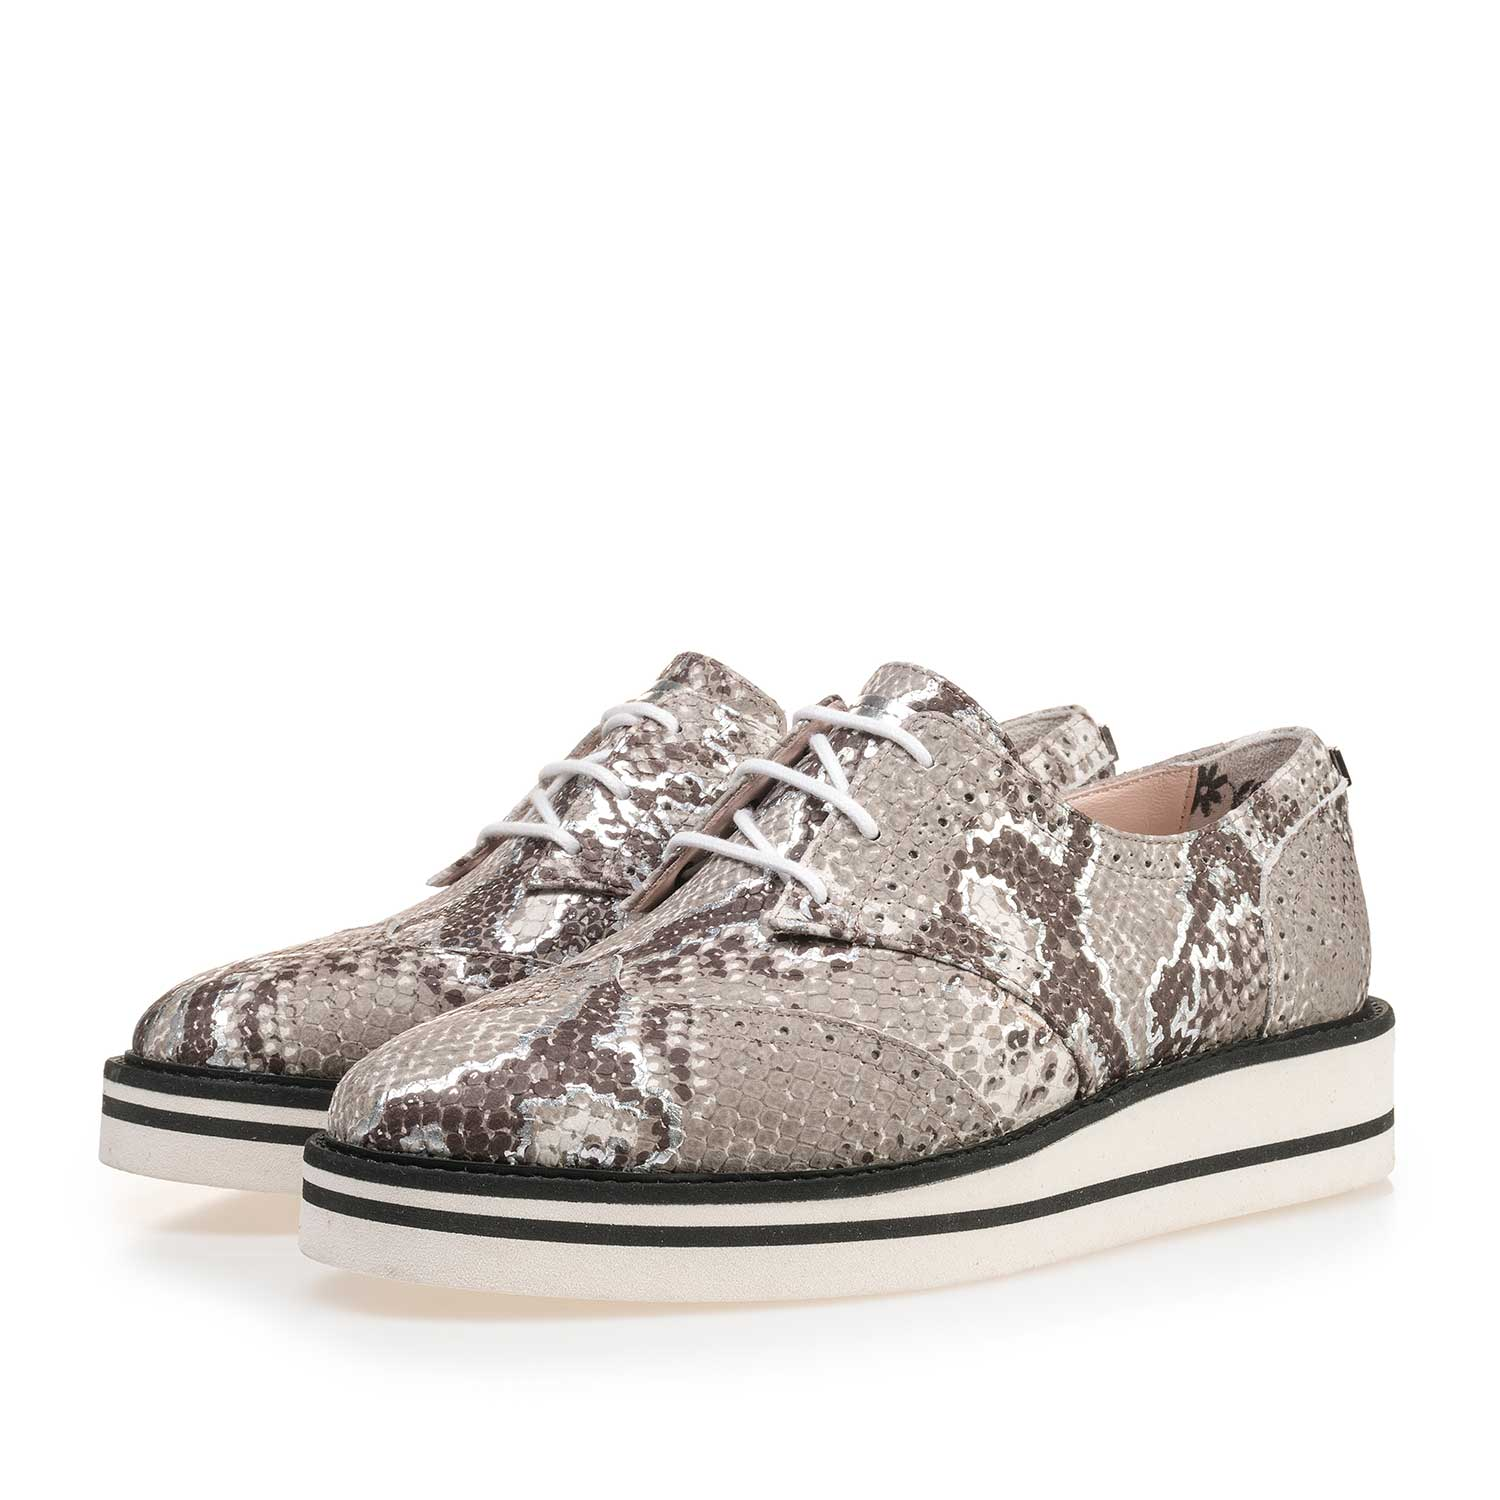 85225/03 - Taupe-coloured brogue leather lace shoe with snake print